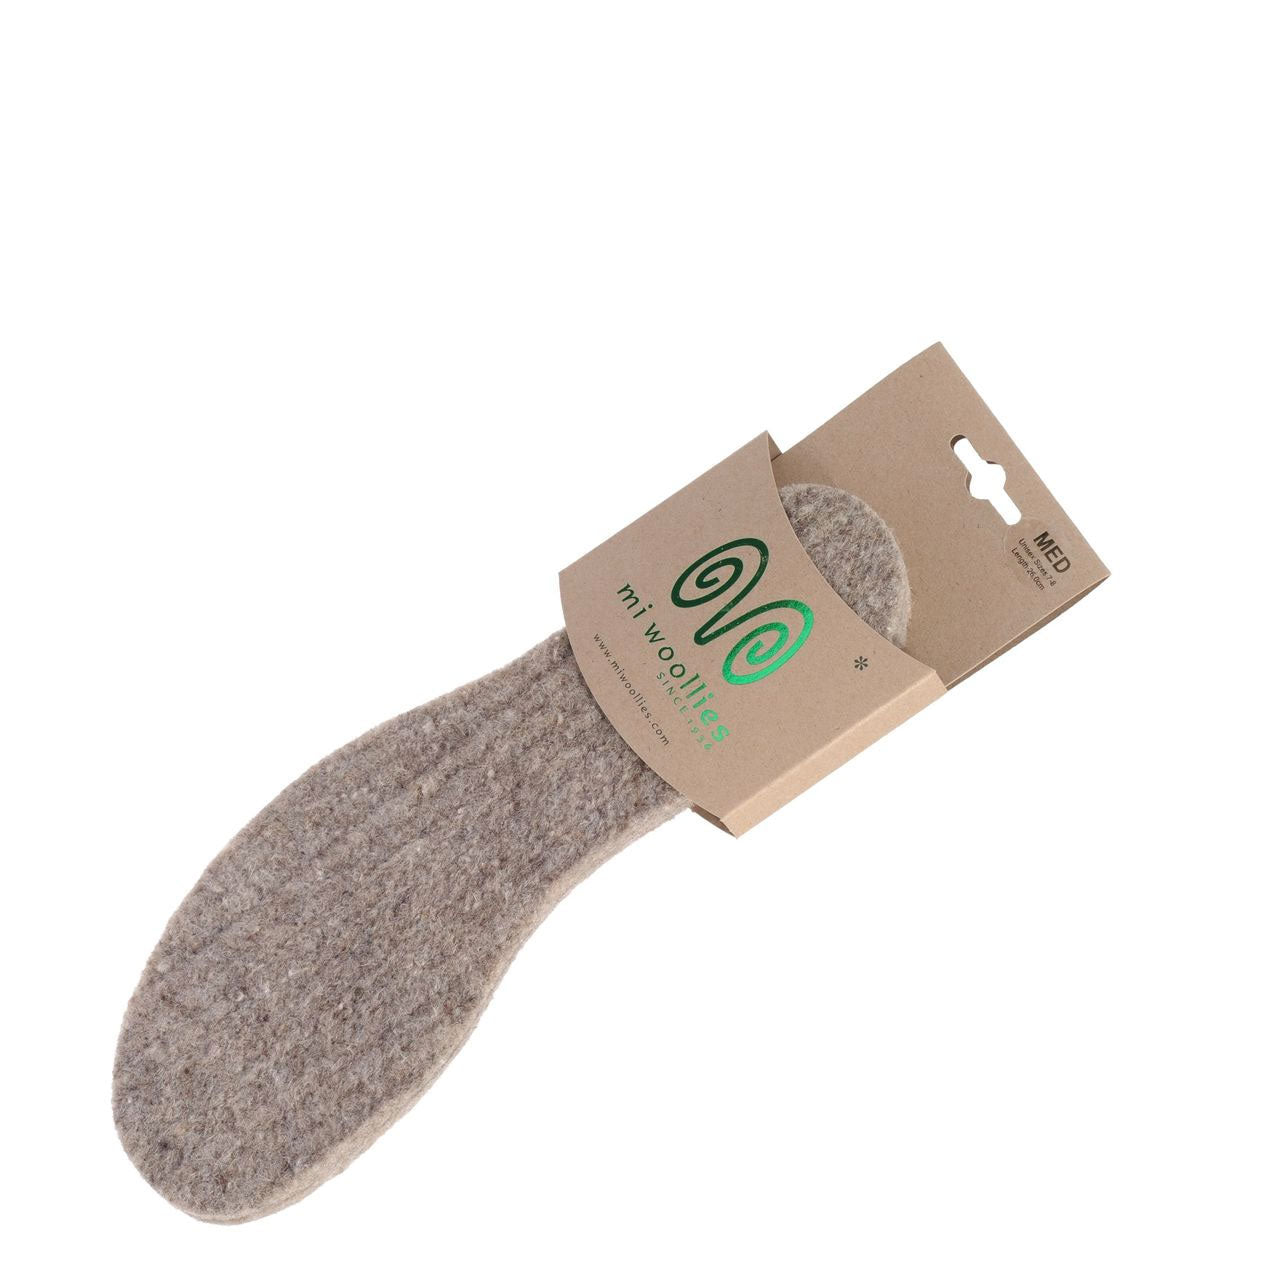 Mi Woollies Wool Needled Insoles